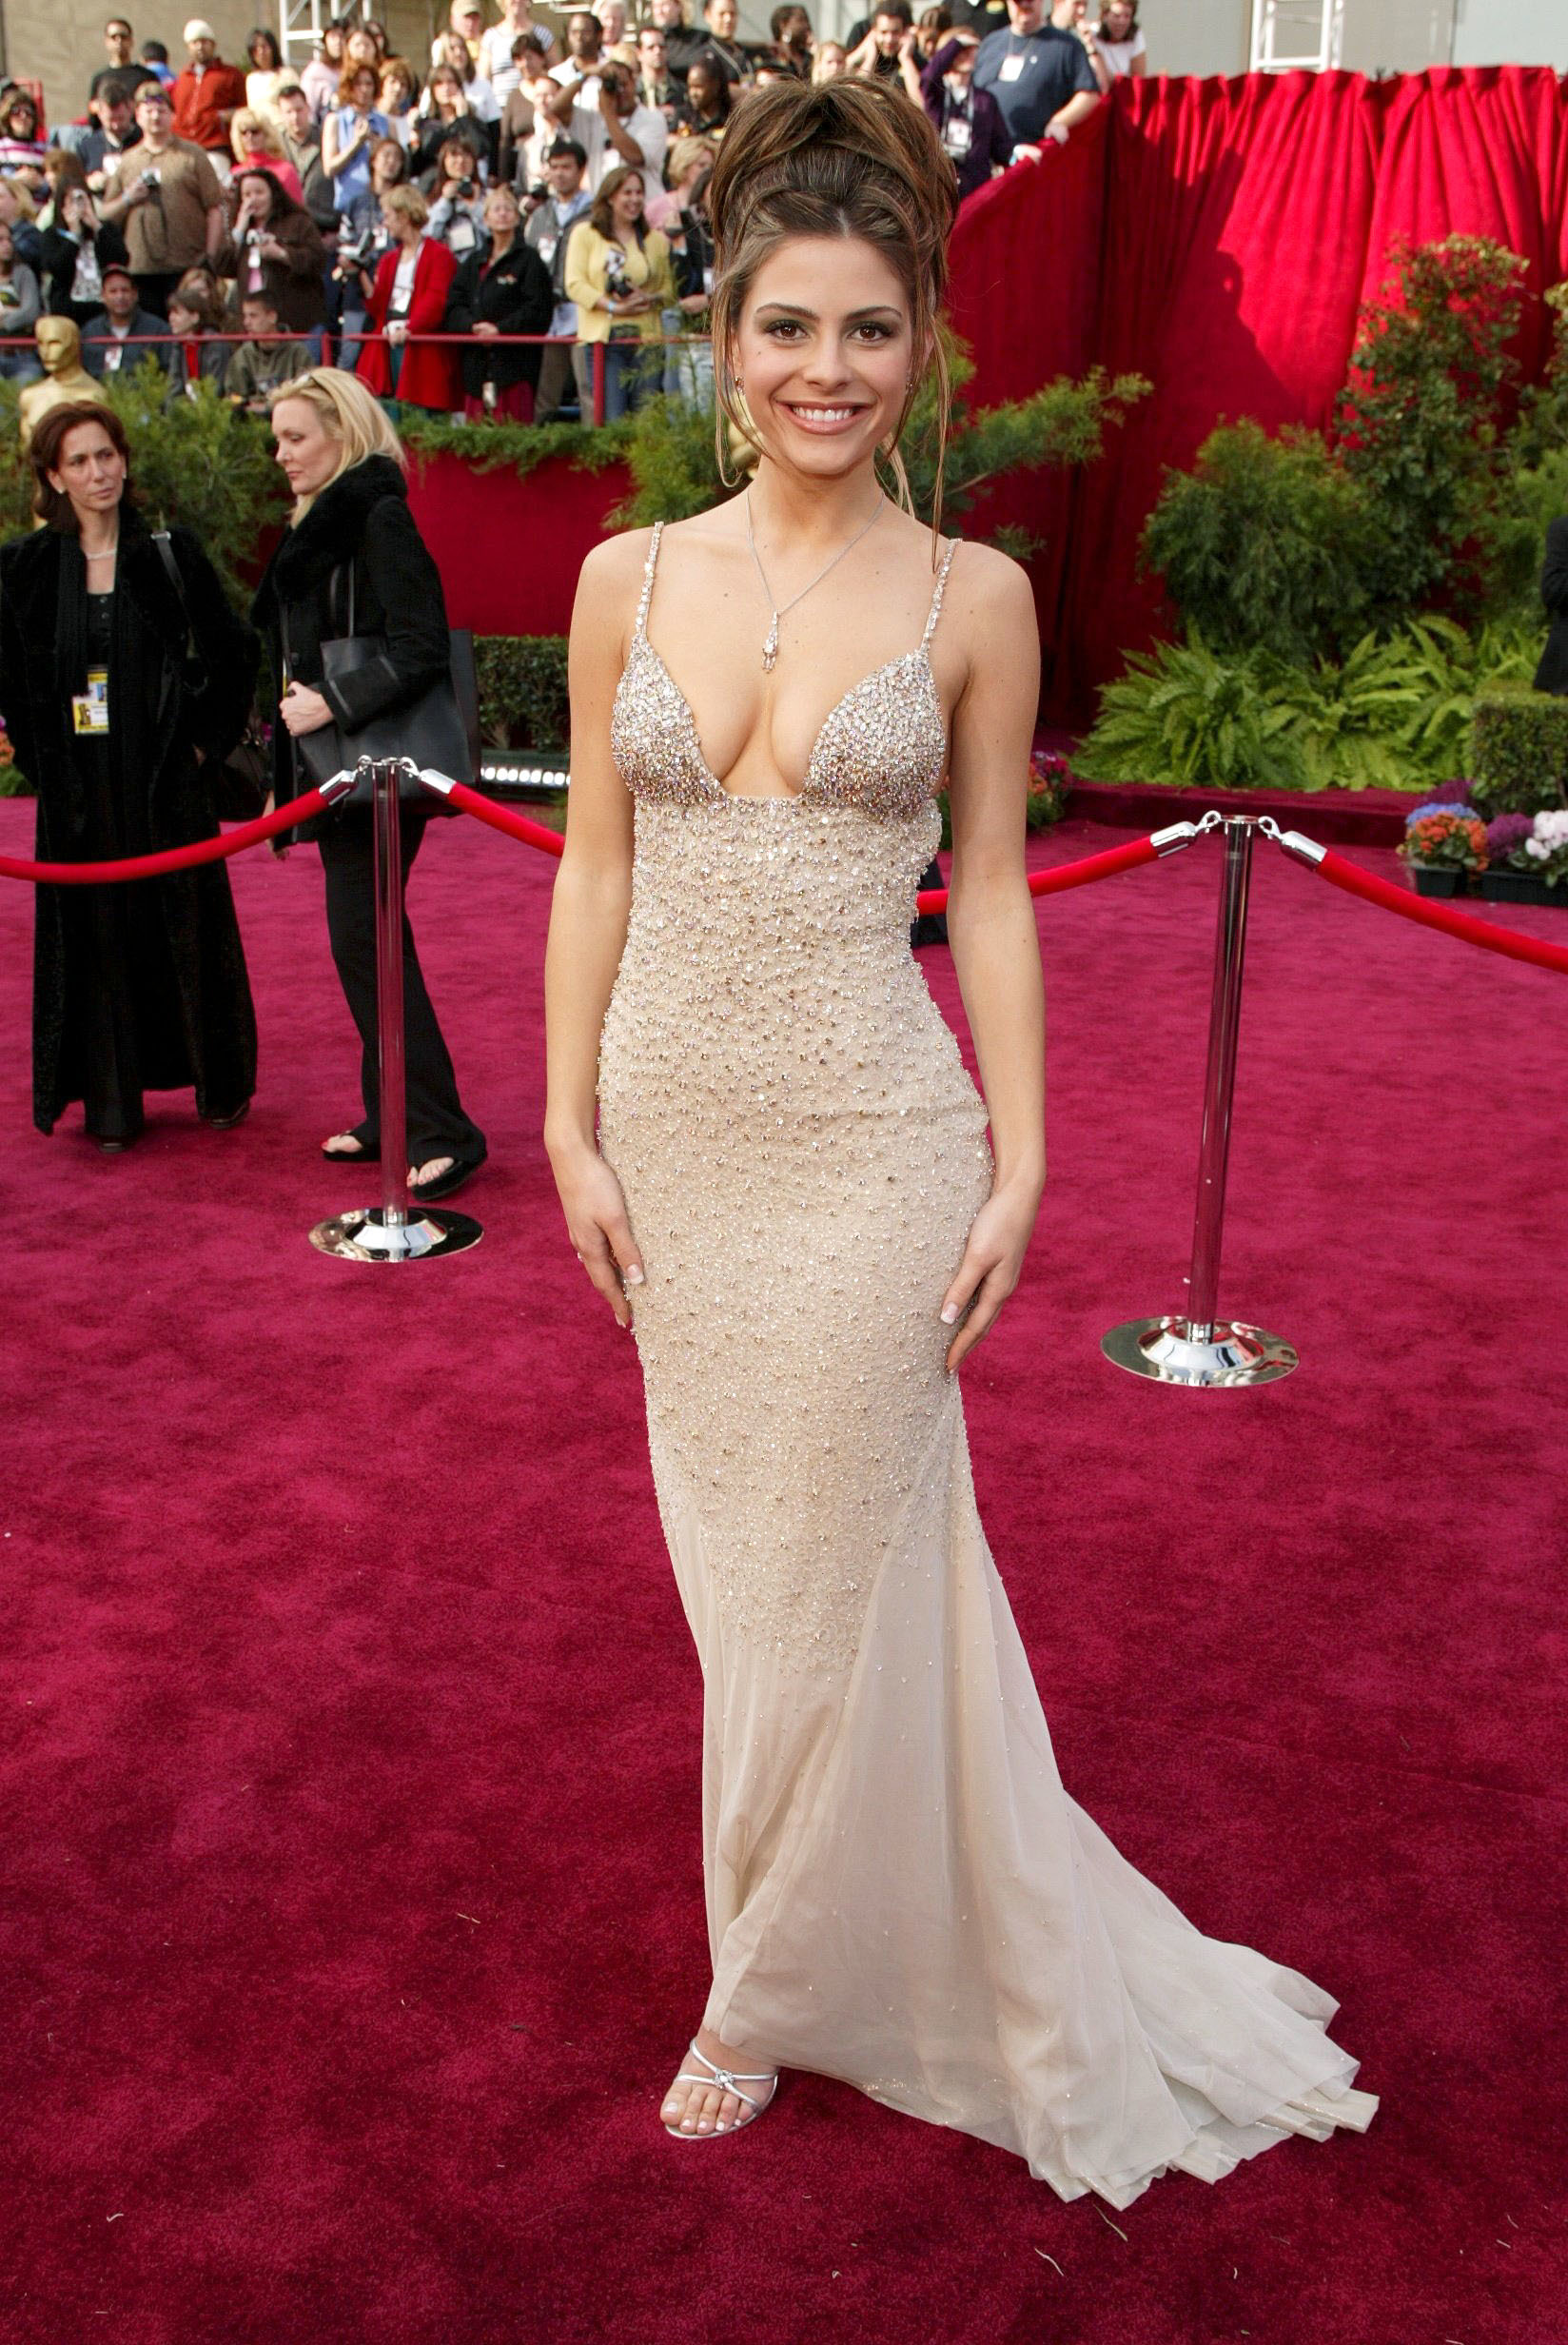 Maria Menounos on the craziest red carpet couture she's ever worn: